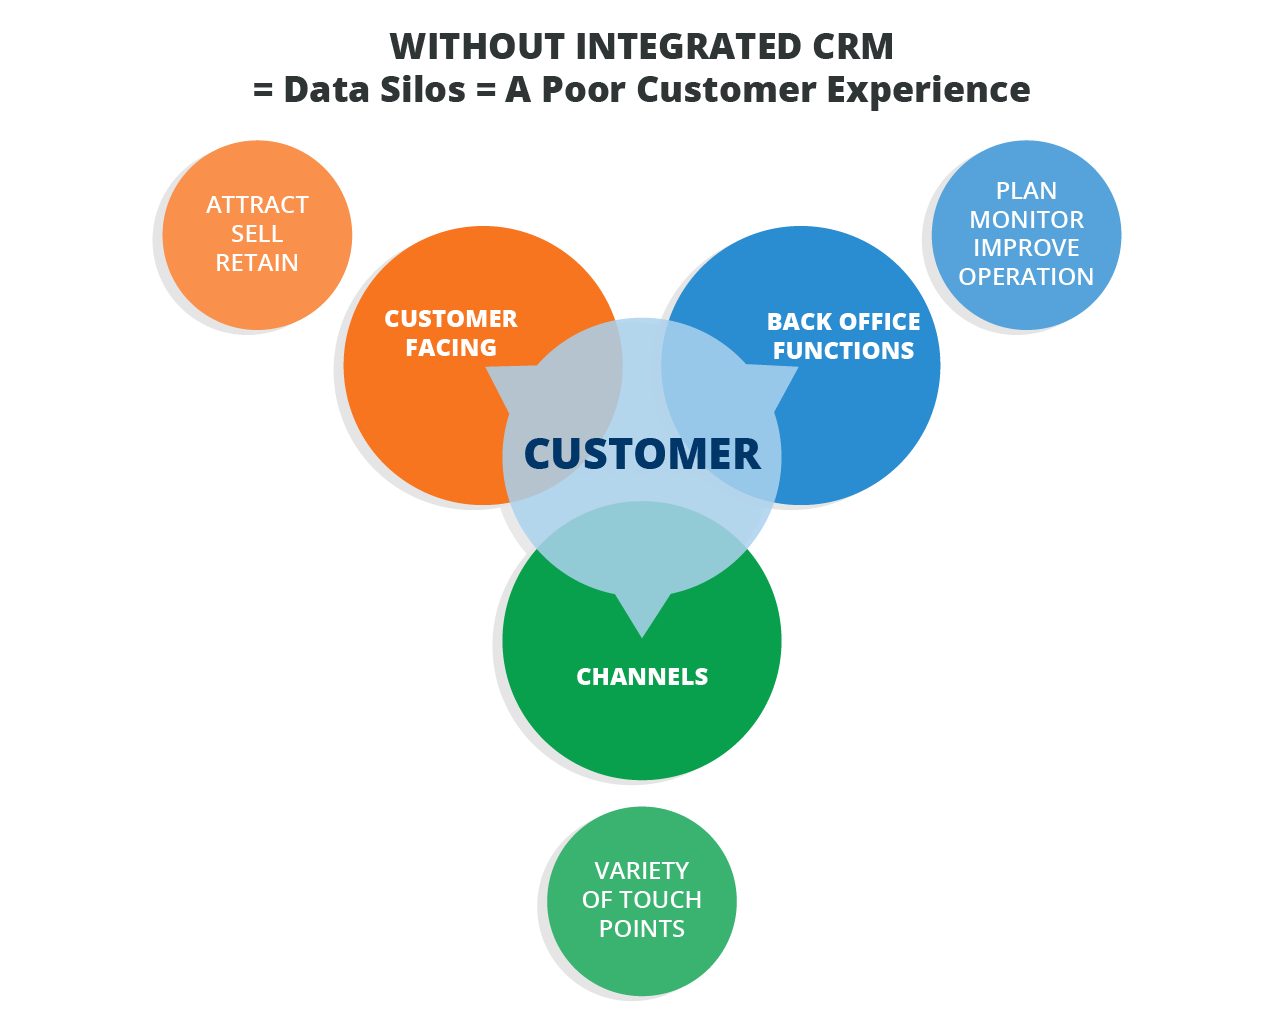 An-integrated-CRM-for-financial-services.png